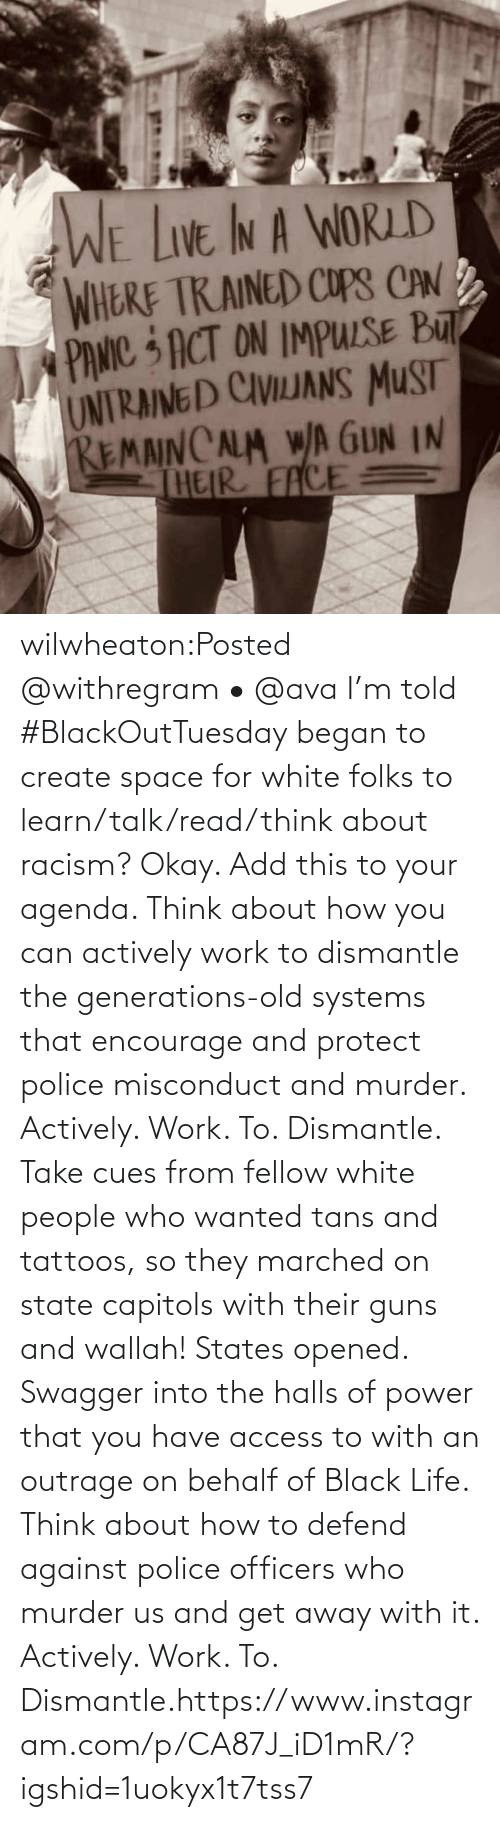 people: wilwheaton:Posted @withregram • @ava I'm told #BlackOutTuesday began to create space for white folks to learn/talk/read/think about racism? Okay. Add this to your agenda. Think about how you can actively work to dismantle the generations-old systems that encourage and protect police misconduct and murder. Actively. Work. To. Dismantle. Take cues from fellow white people who wanted tans and tattoos, so they marched on state capitols with their guns and wallah! States opened. Swagger into the halls of power that you have access to with an outrage on behalf of Black Life. Think about how to defend against police officers who murder us and get away with it. Actively. Work. To. Dismantle.https://www.instagram.com/p/CA87J_iD1mR/?igshid=1uokyx1t7tss7